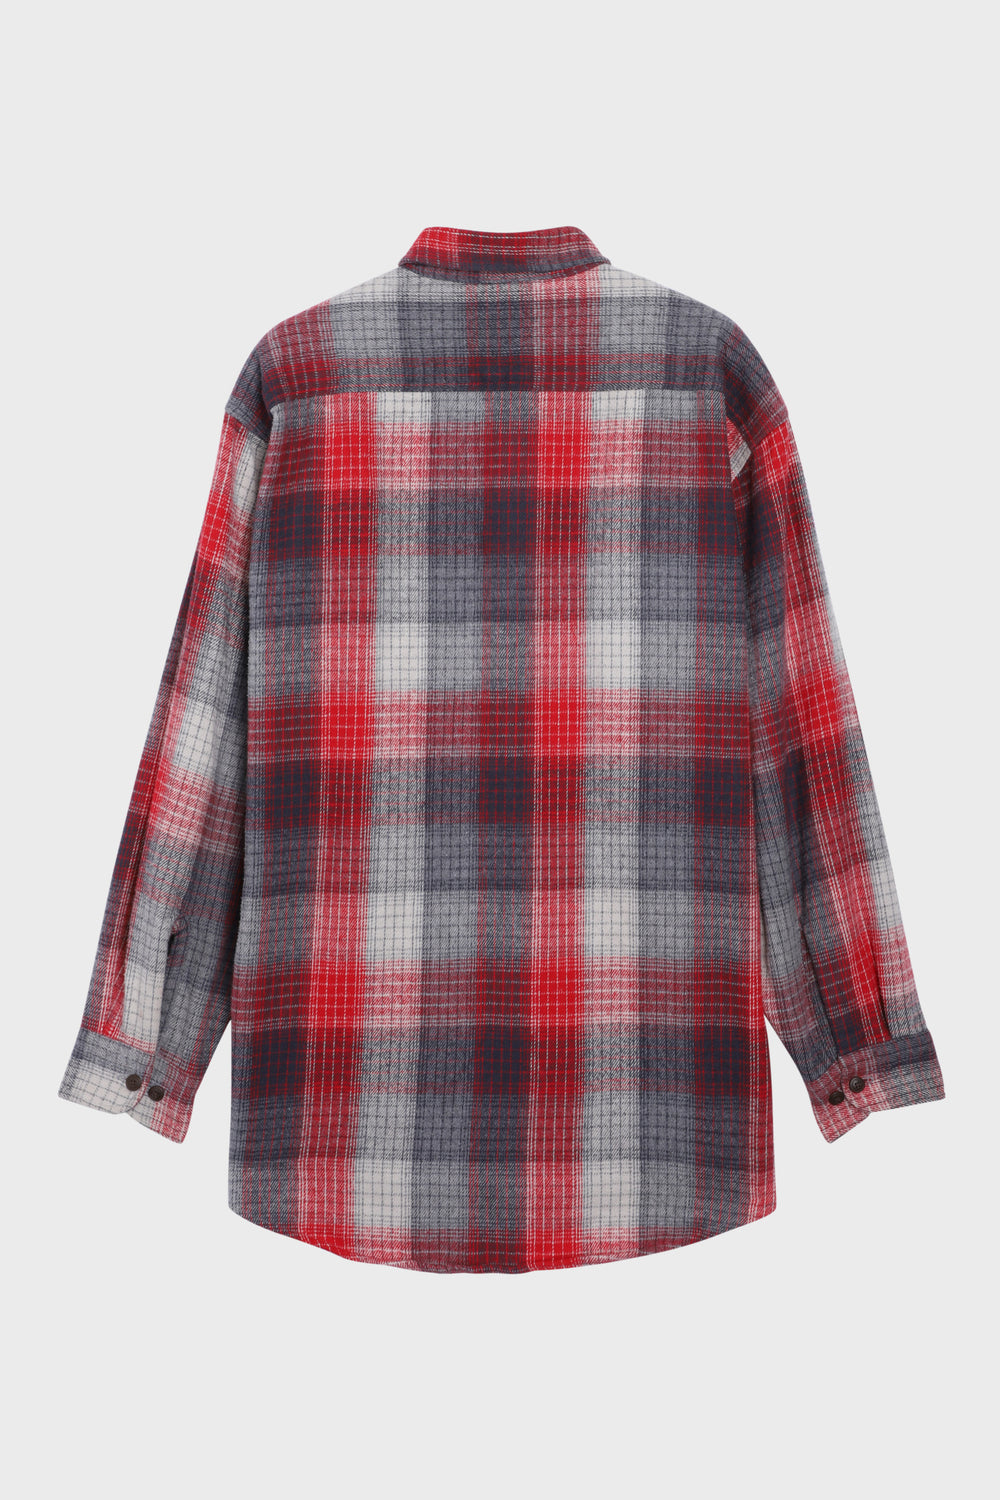 product-color-Red and Grey Checked Overshirt